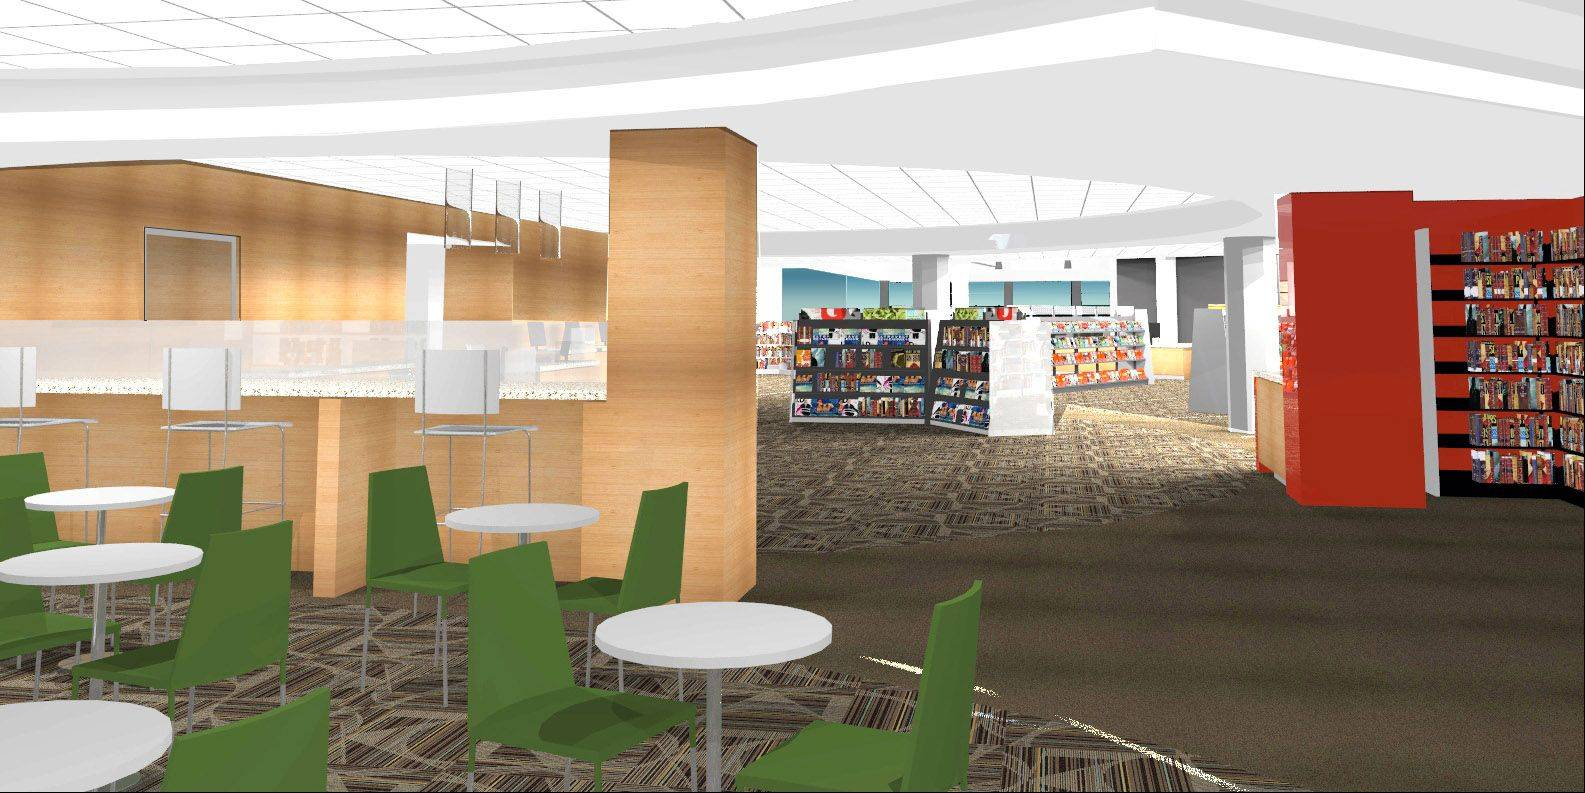 Artist's rendering of cafe, which will be part of the Vernon Area Public Library's renovation project in Lincolnshire.